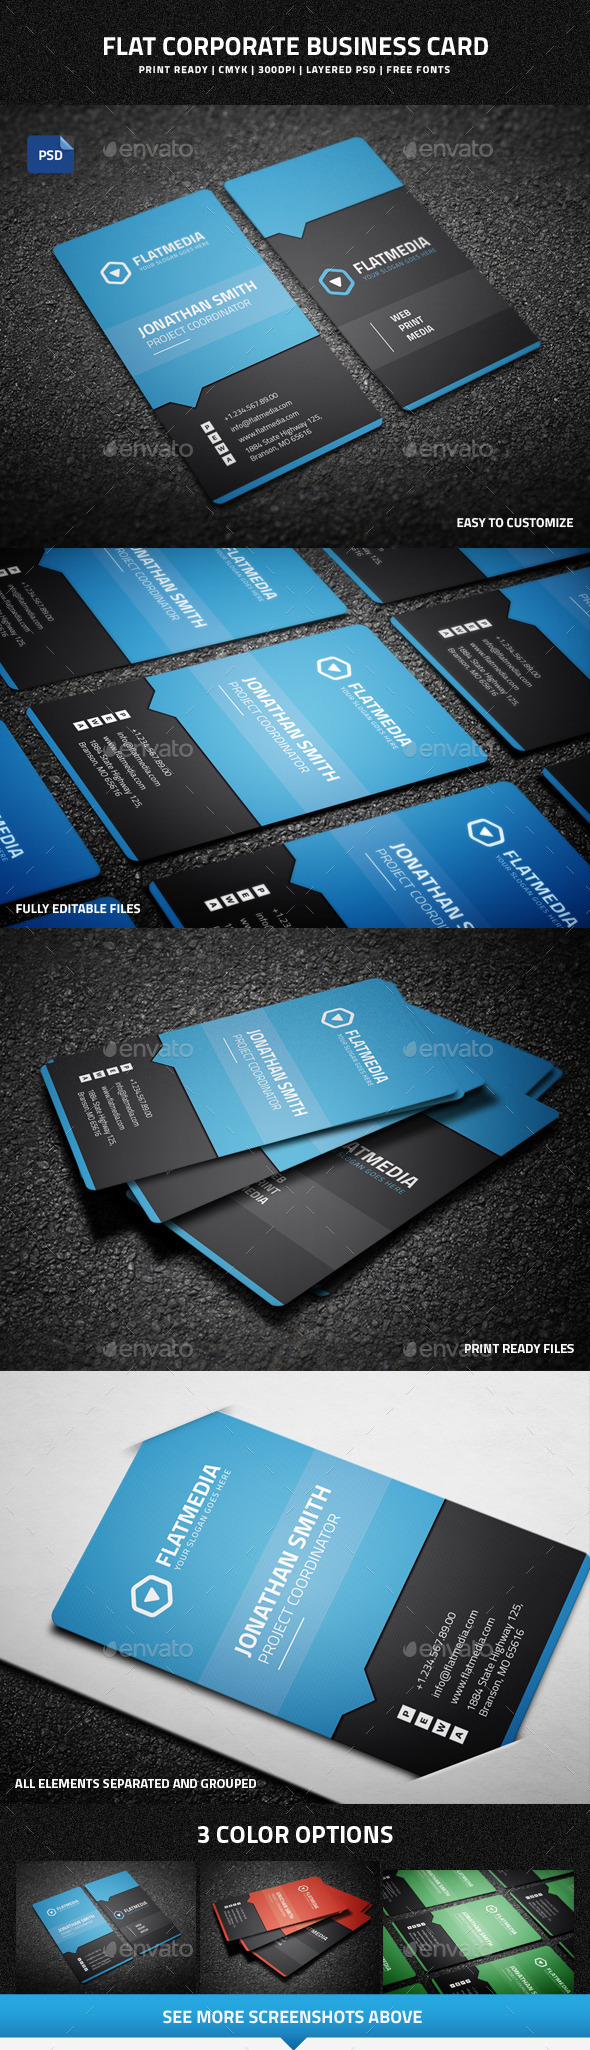 GraphicRiver Flat Corporate Business Card 9126641